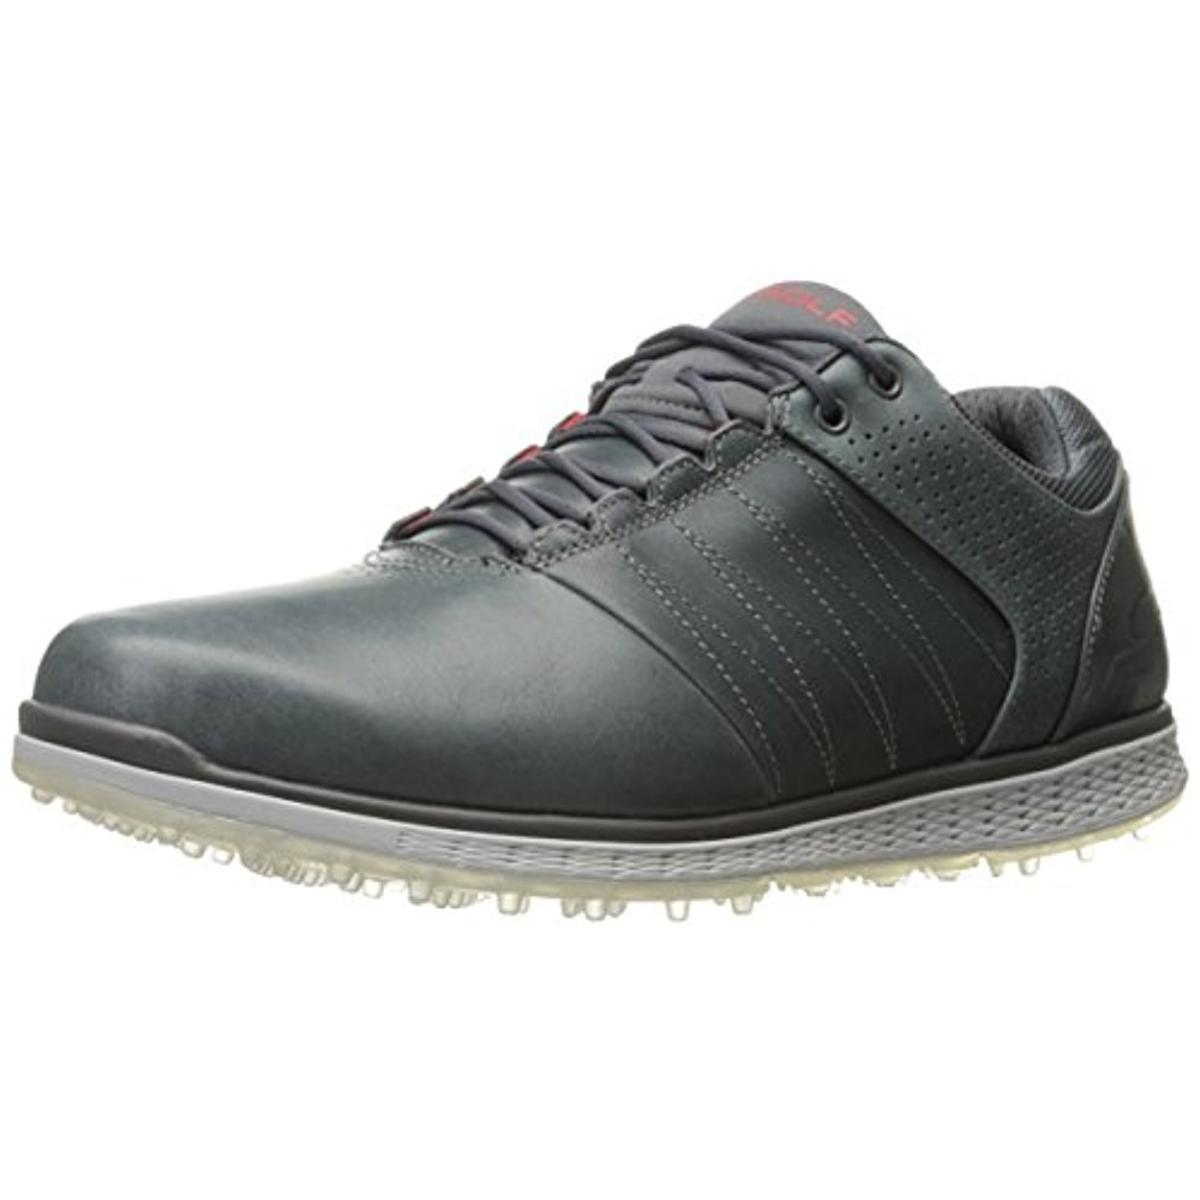 Skechers Mens Go Golf Leather Waterproof Golf Shoes by Skechers